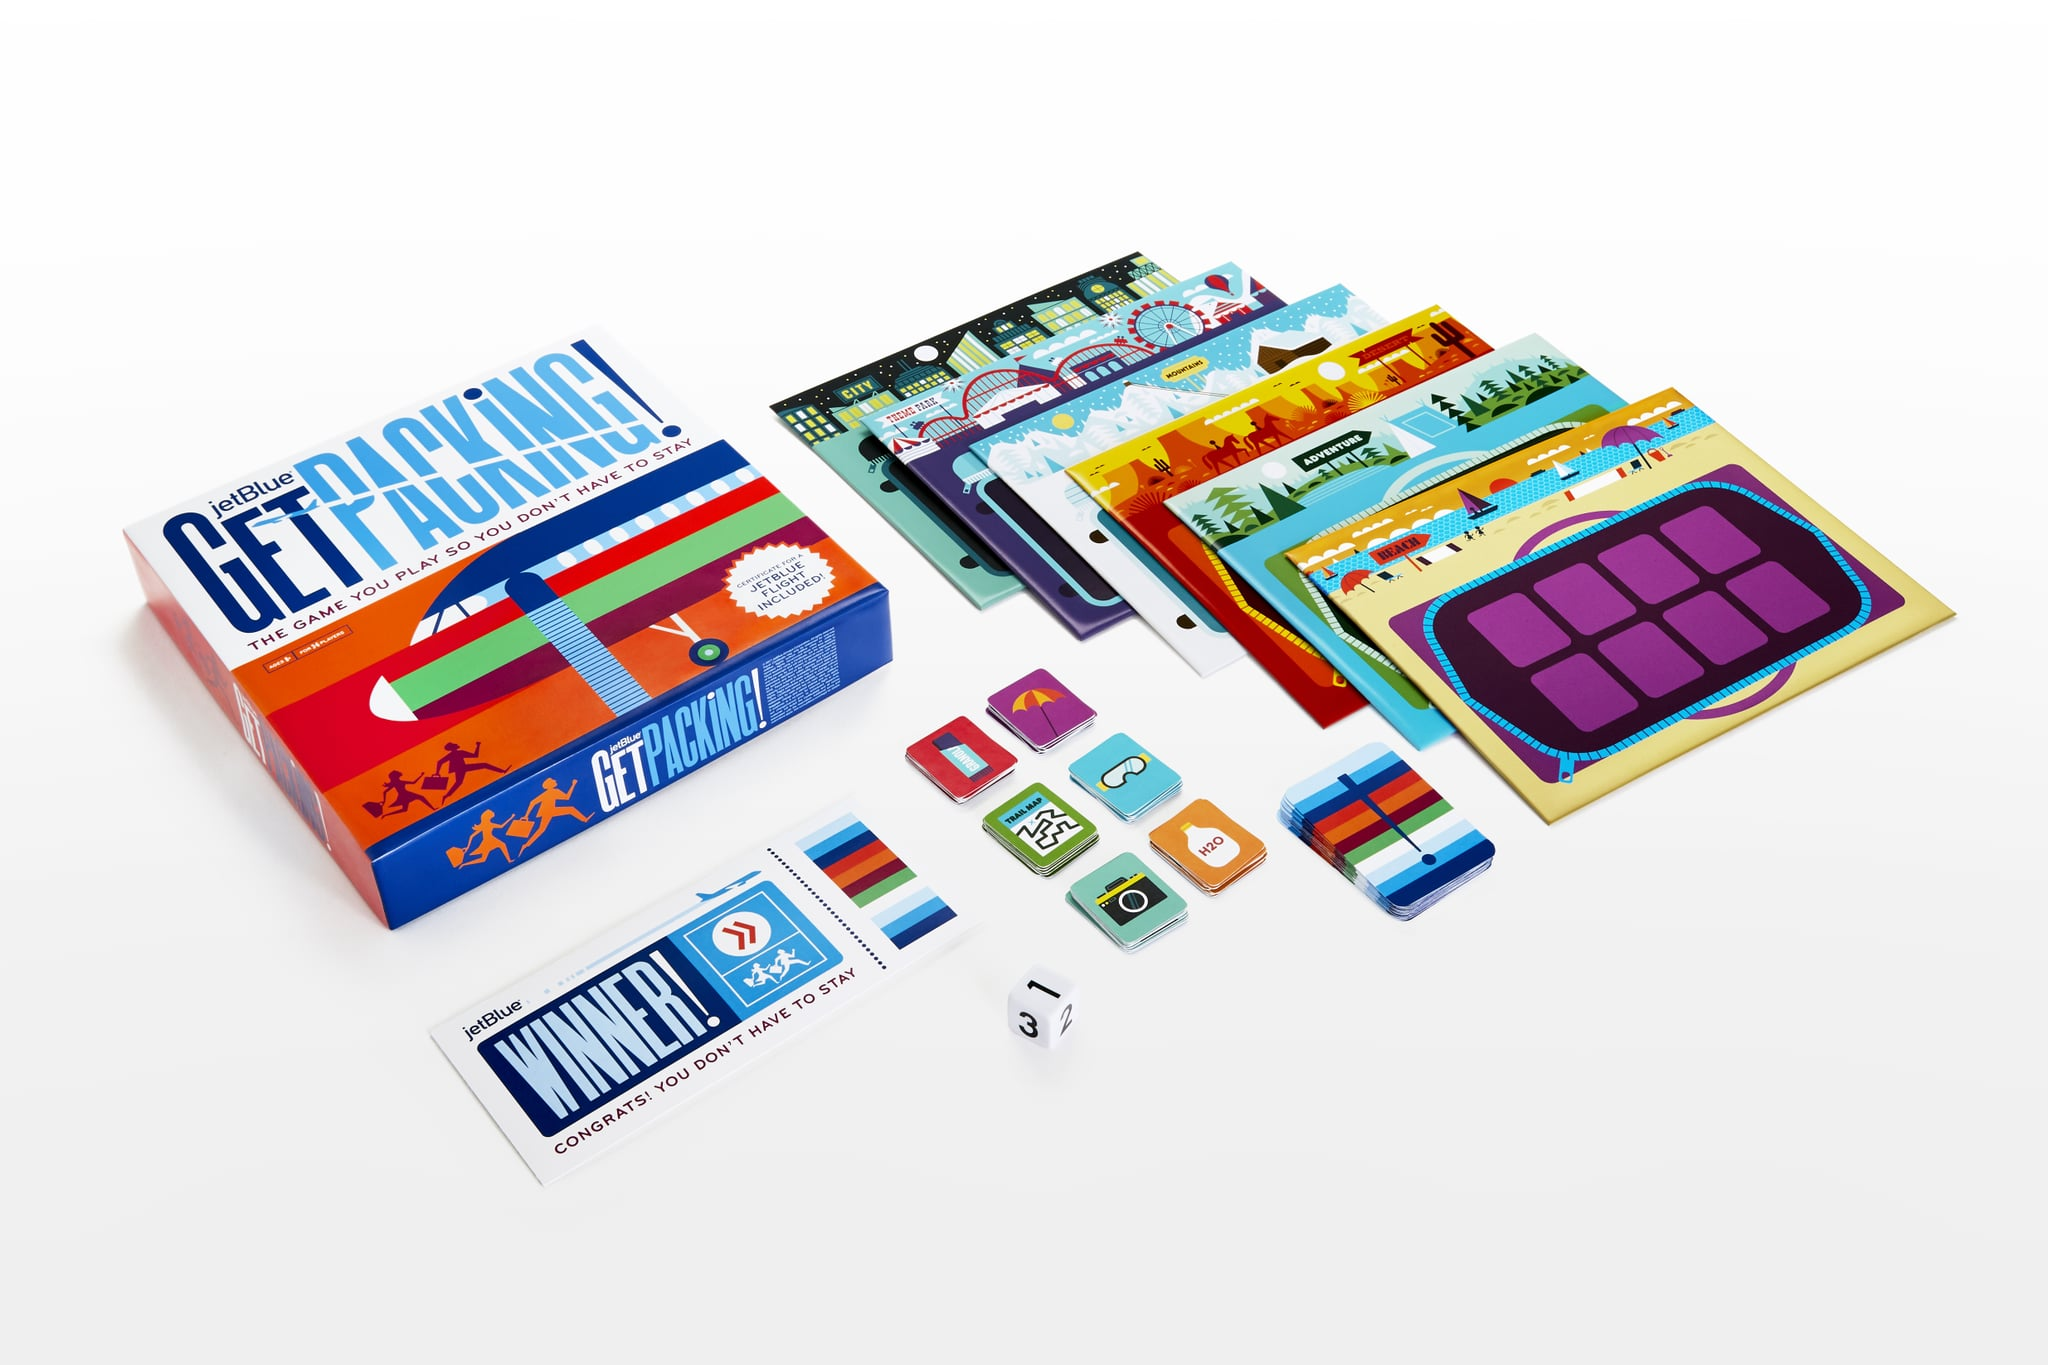 If You Buy This JetBlue Board Game For $20, It Comes With a Roundtrip Flight!